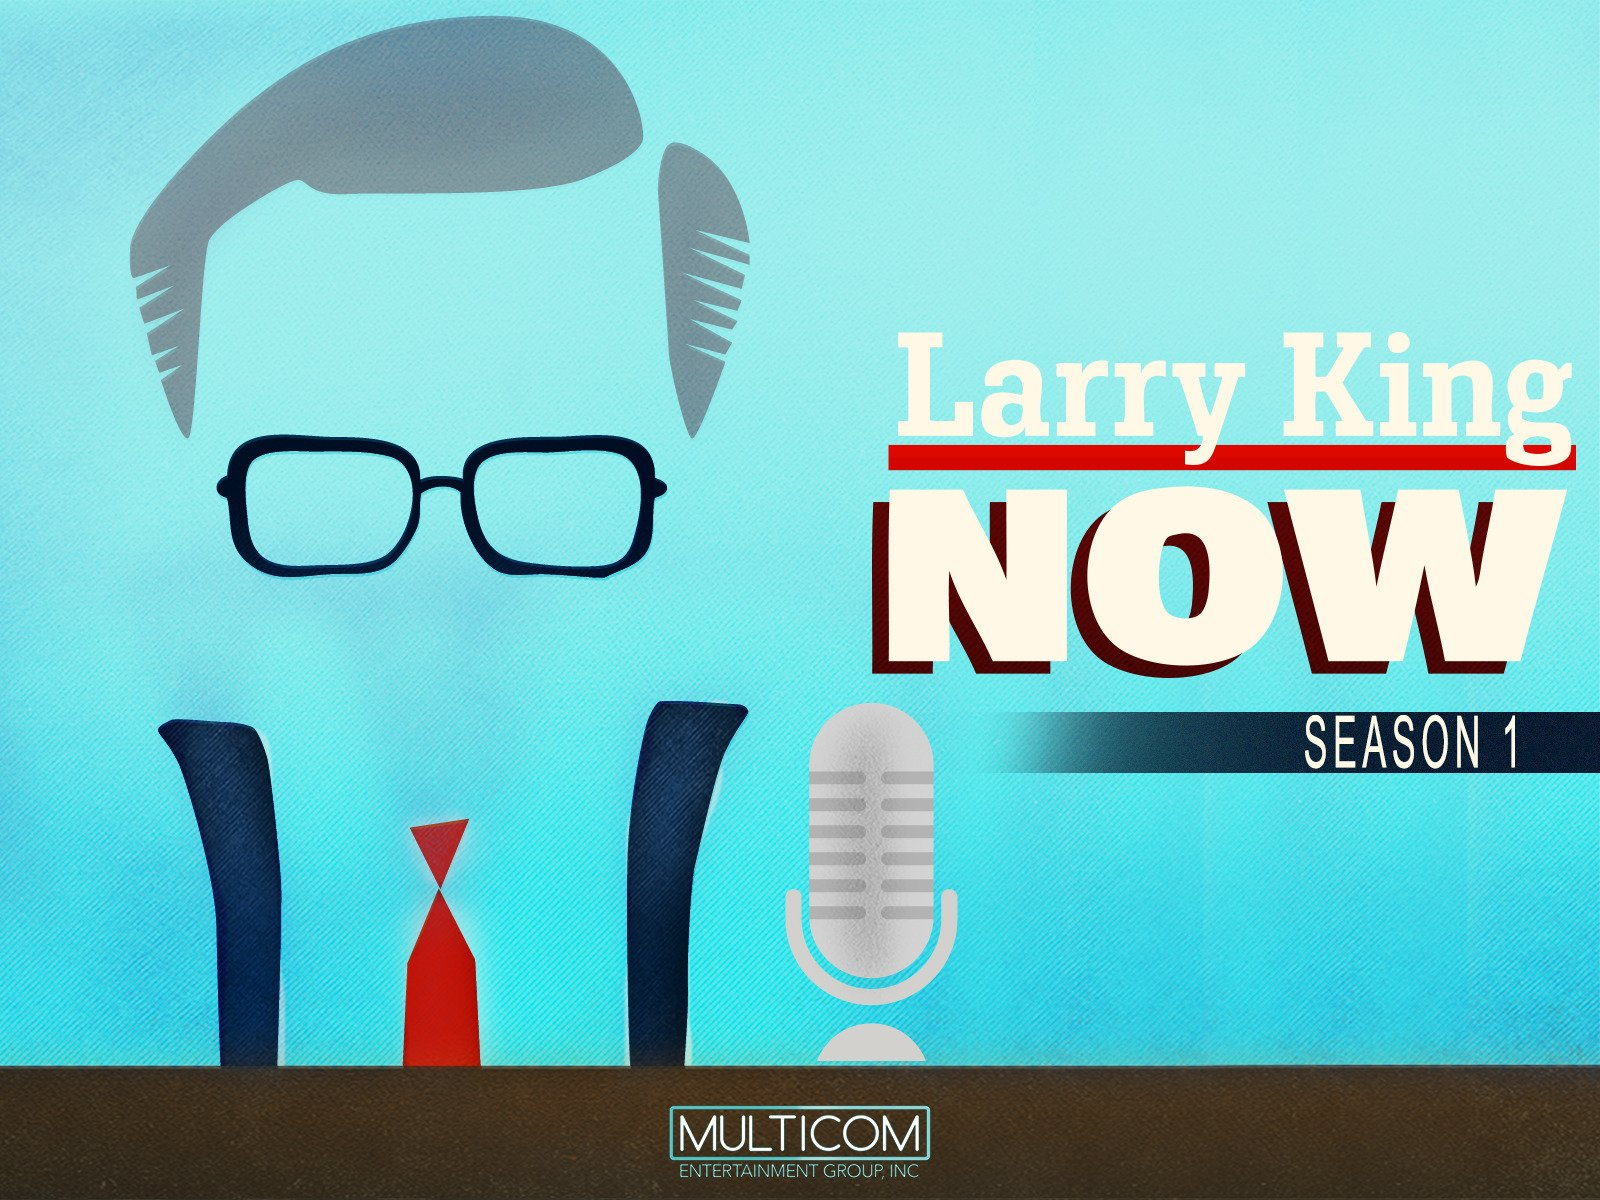 Larry King Now - Season 1